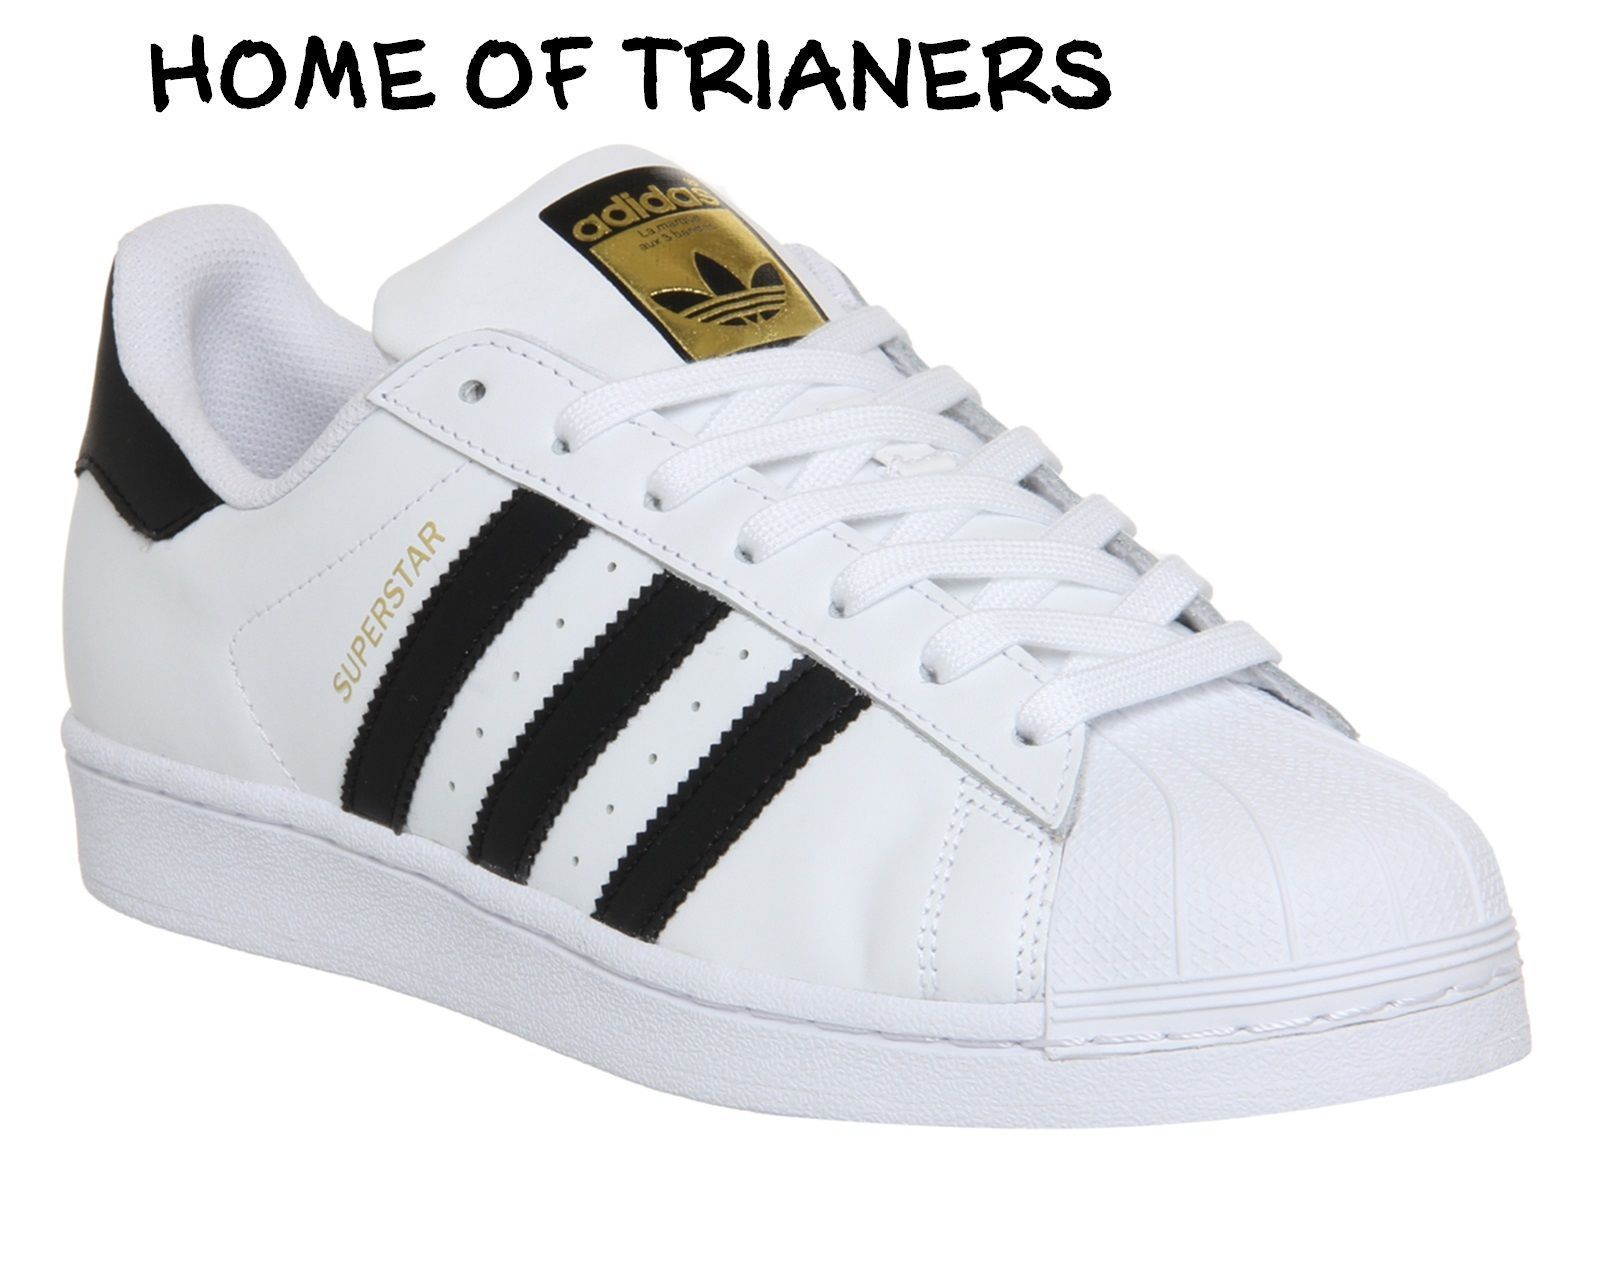 4ae20f0fe839ee Adidas Super Star (Gs) White Black Gold Women Boys Girls Trainers All Sizes